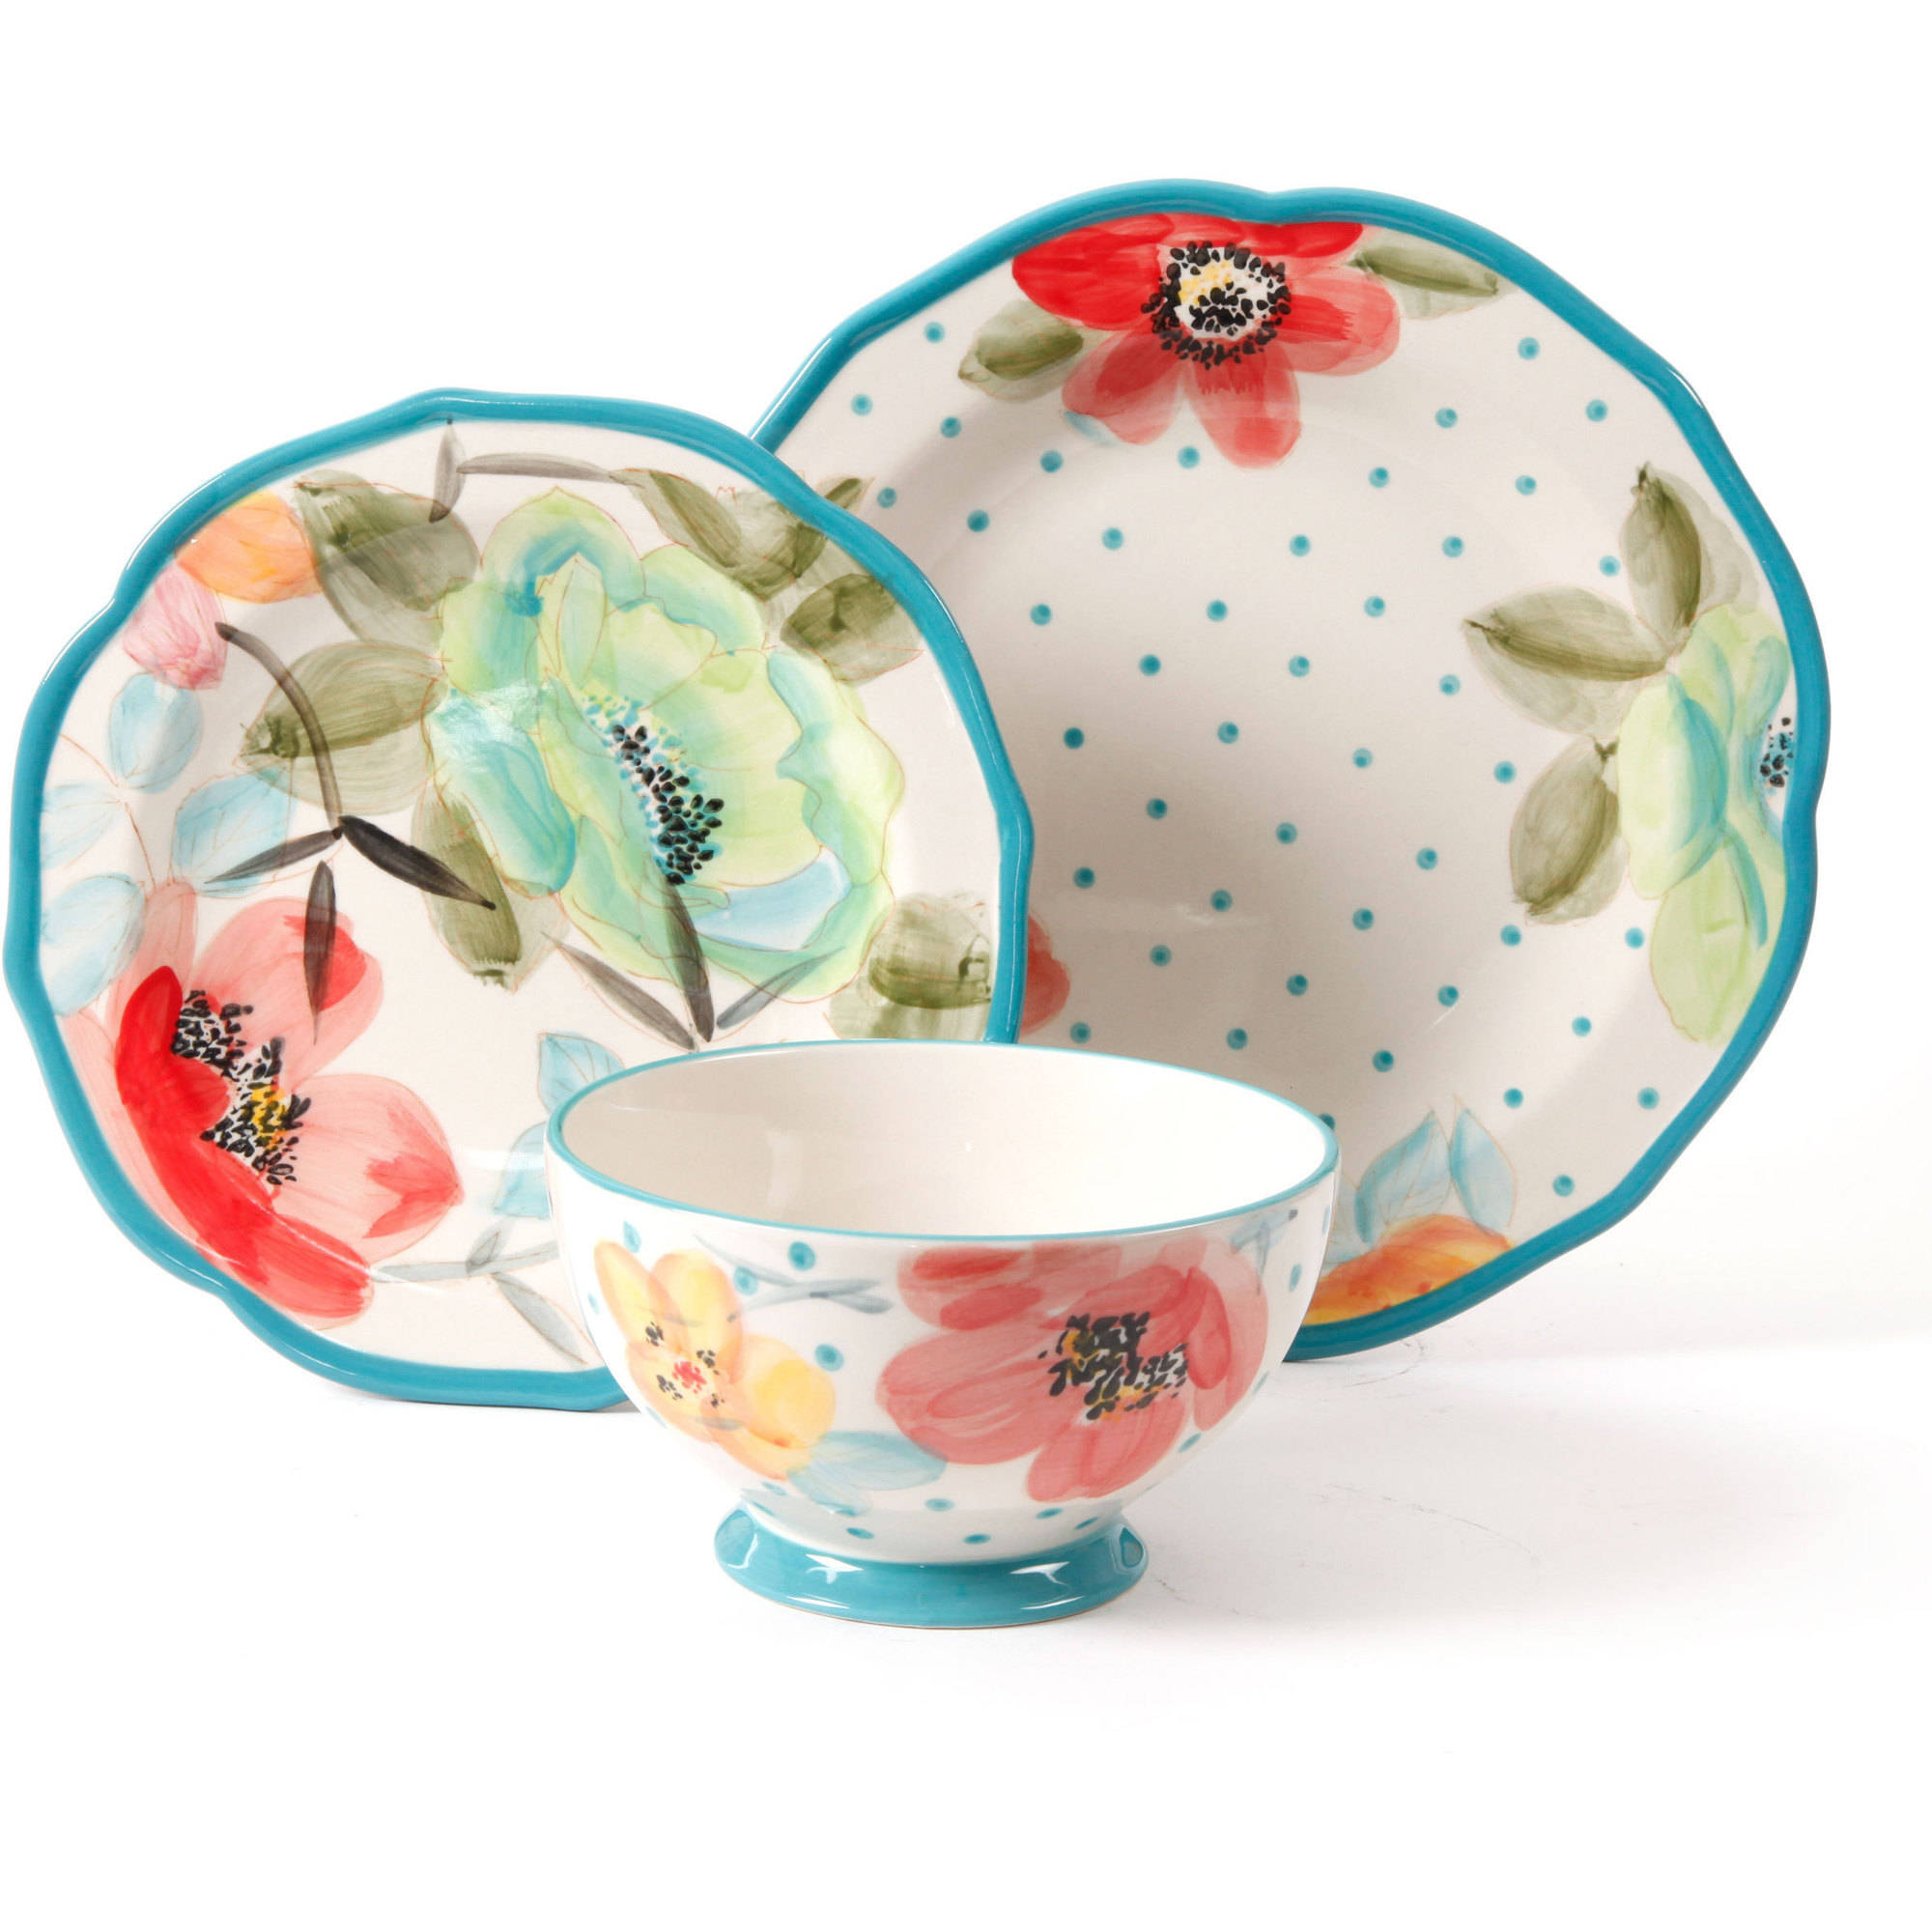 The Pioneer Woman Vintage Bloom 12-Piece Decorated Dinnerware Set - Walmart.com  sc 1 st  Walmart.com & The Pioneer Woman Vintage Bloom 12-Piece Decorated Dinnerware Set ...